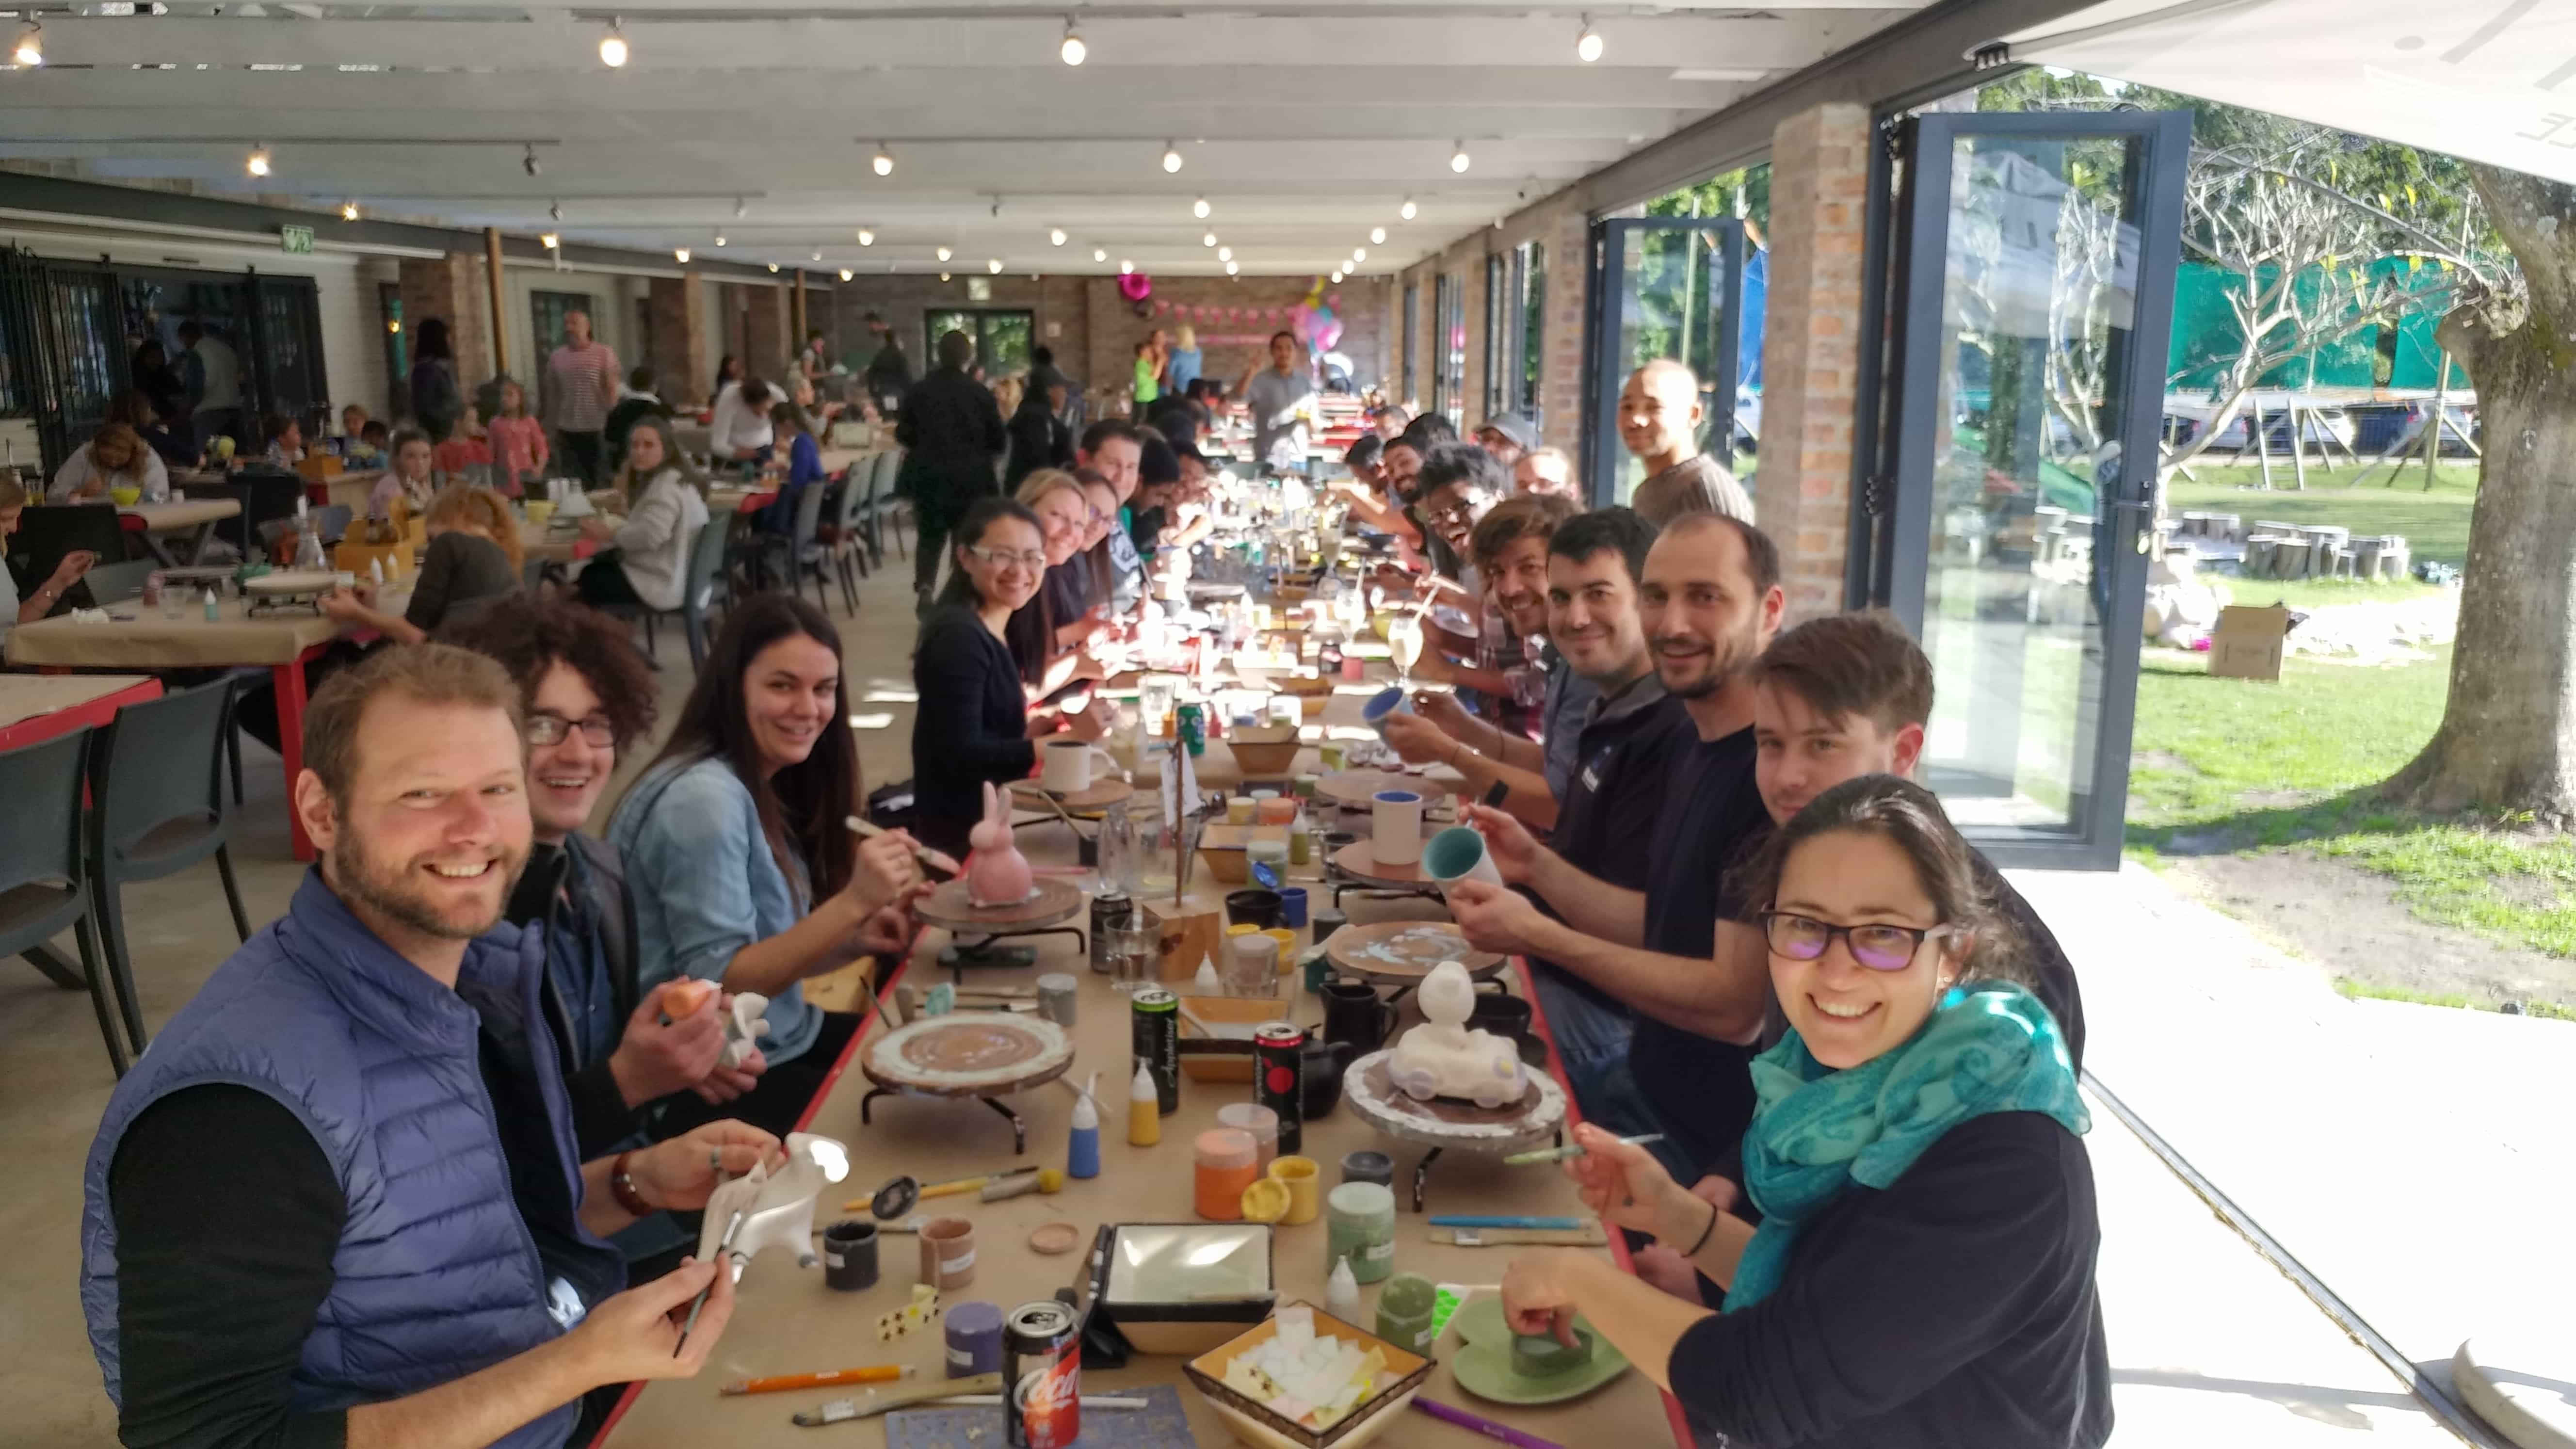 SOLID's Cape Town office having their teambuilding event at Clay Cafe